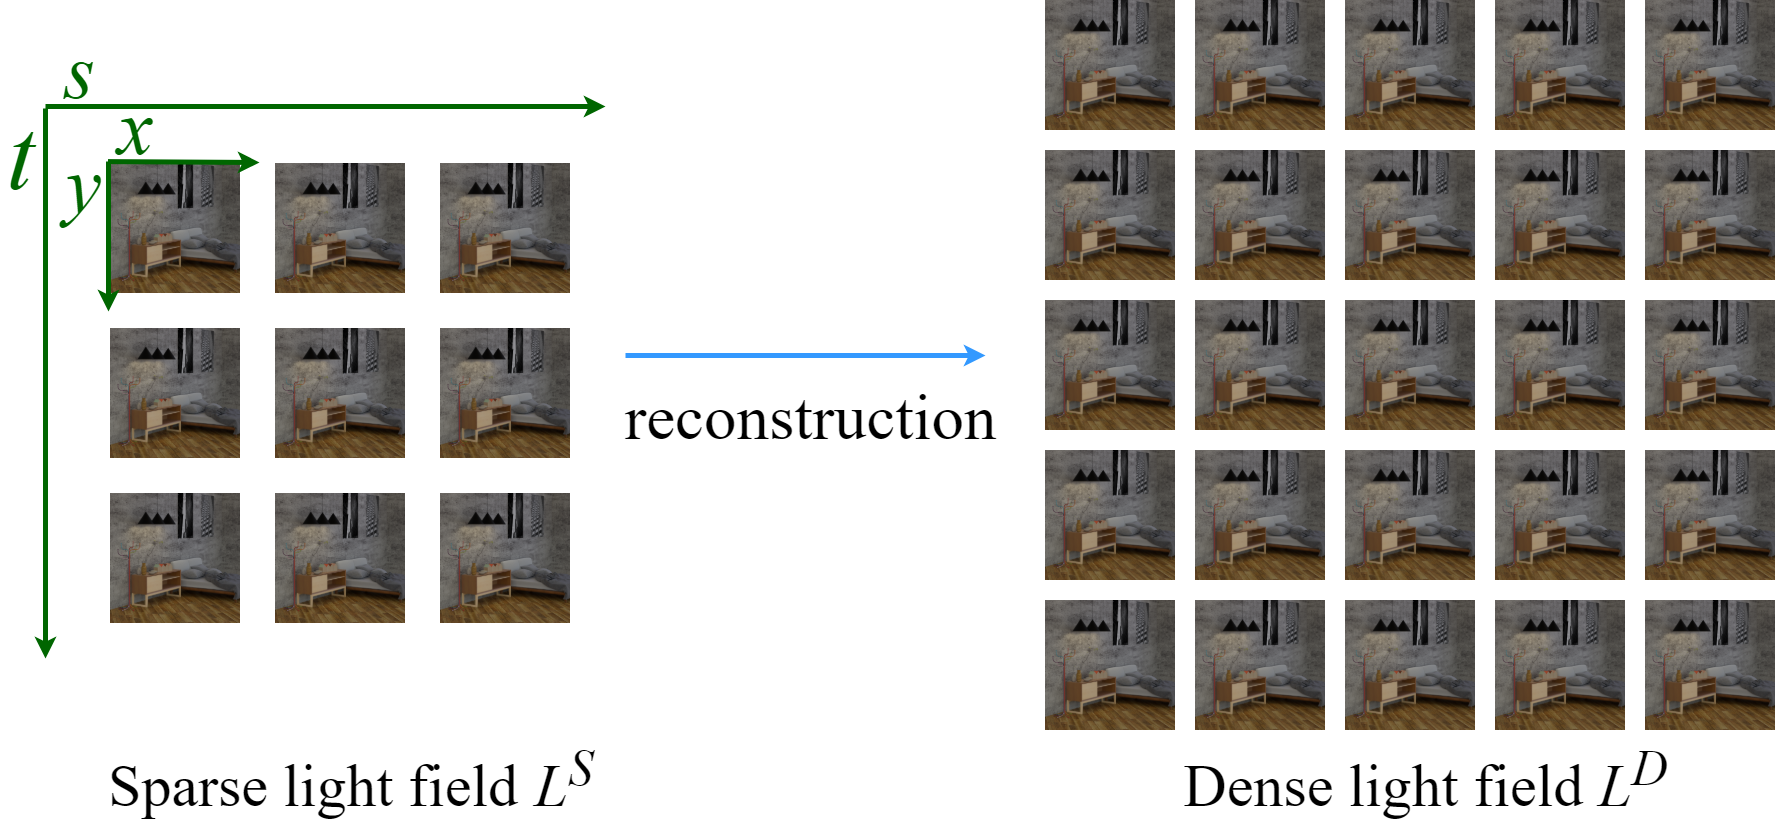 Self-supervised light field view synthesis using cycle consistency